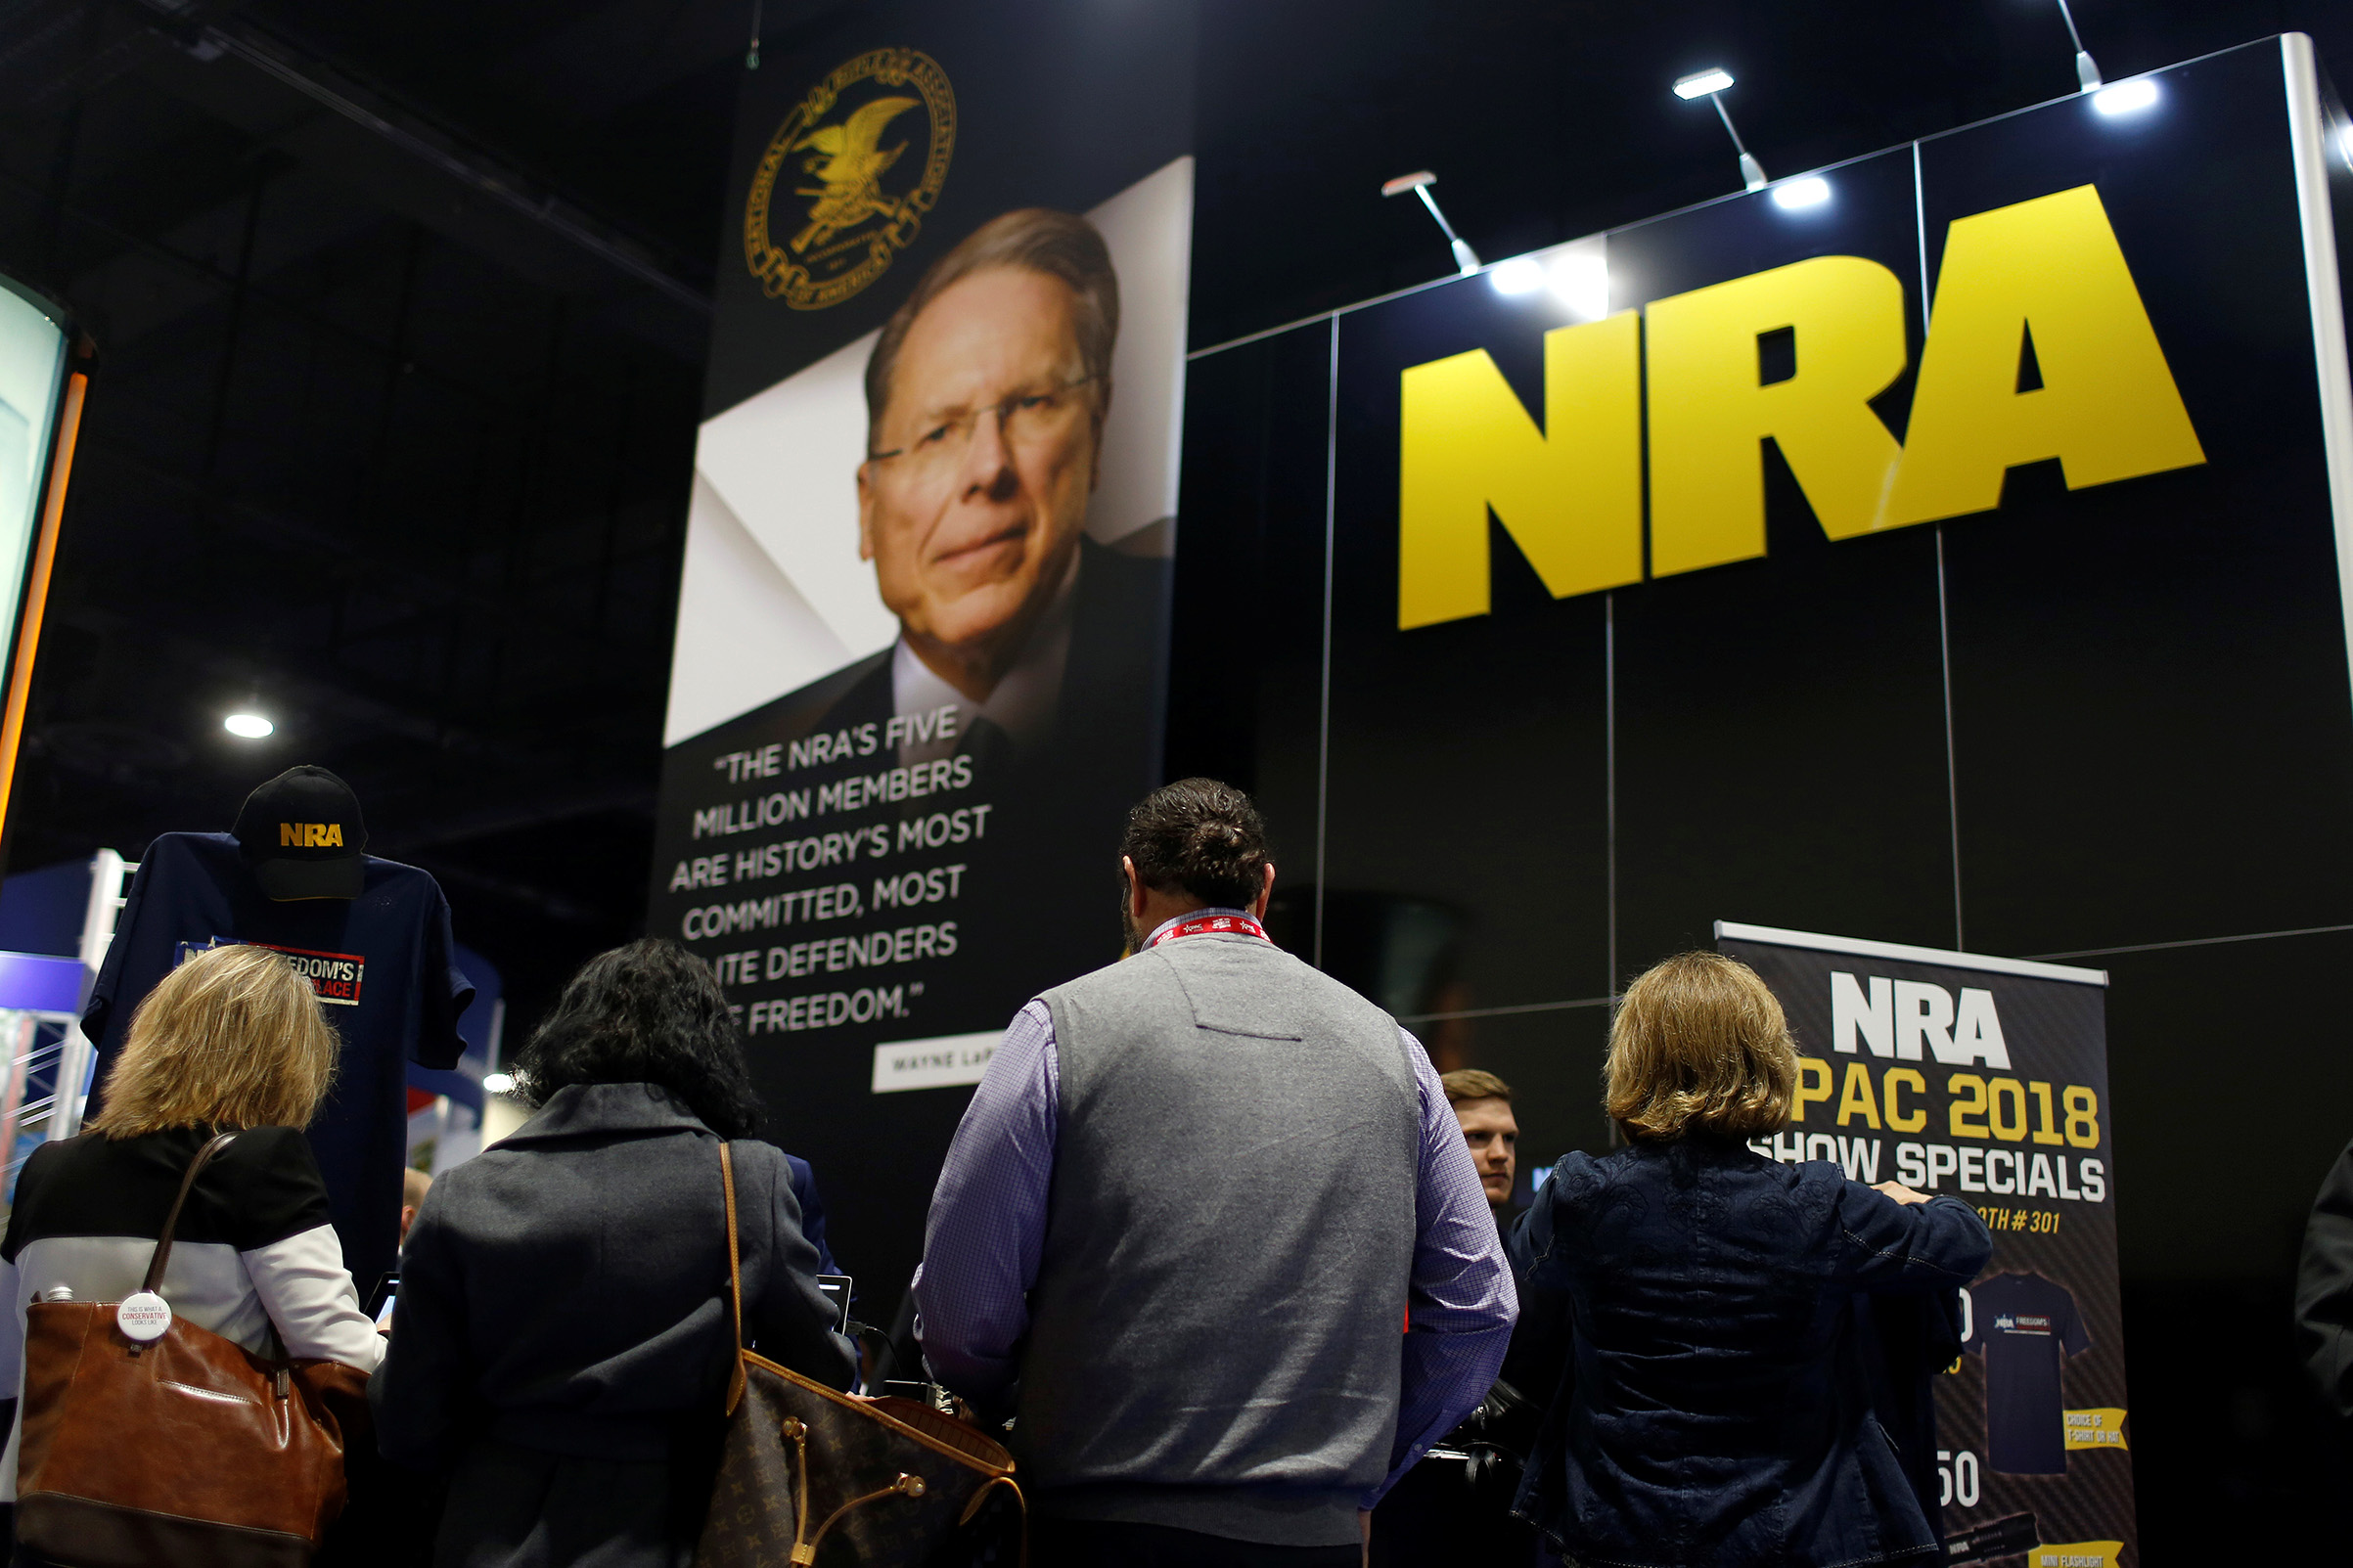 People sign up at the booth for the National Rifle Association (NRA) at the Conservative Political Action Conference (CPAC) at National Harbor, Md., on Feb. 23, 2018.